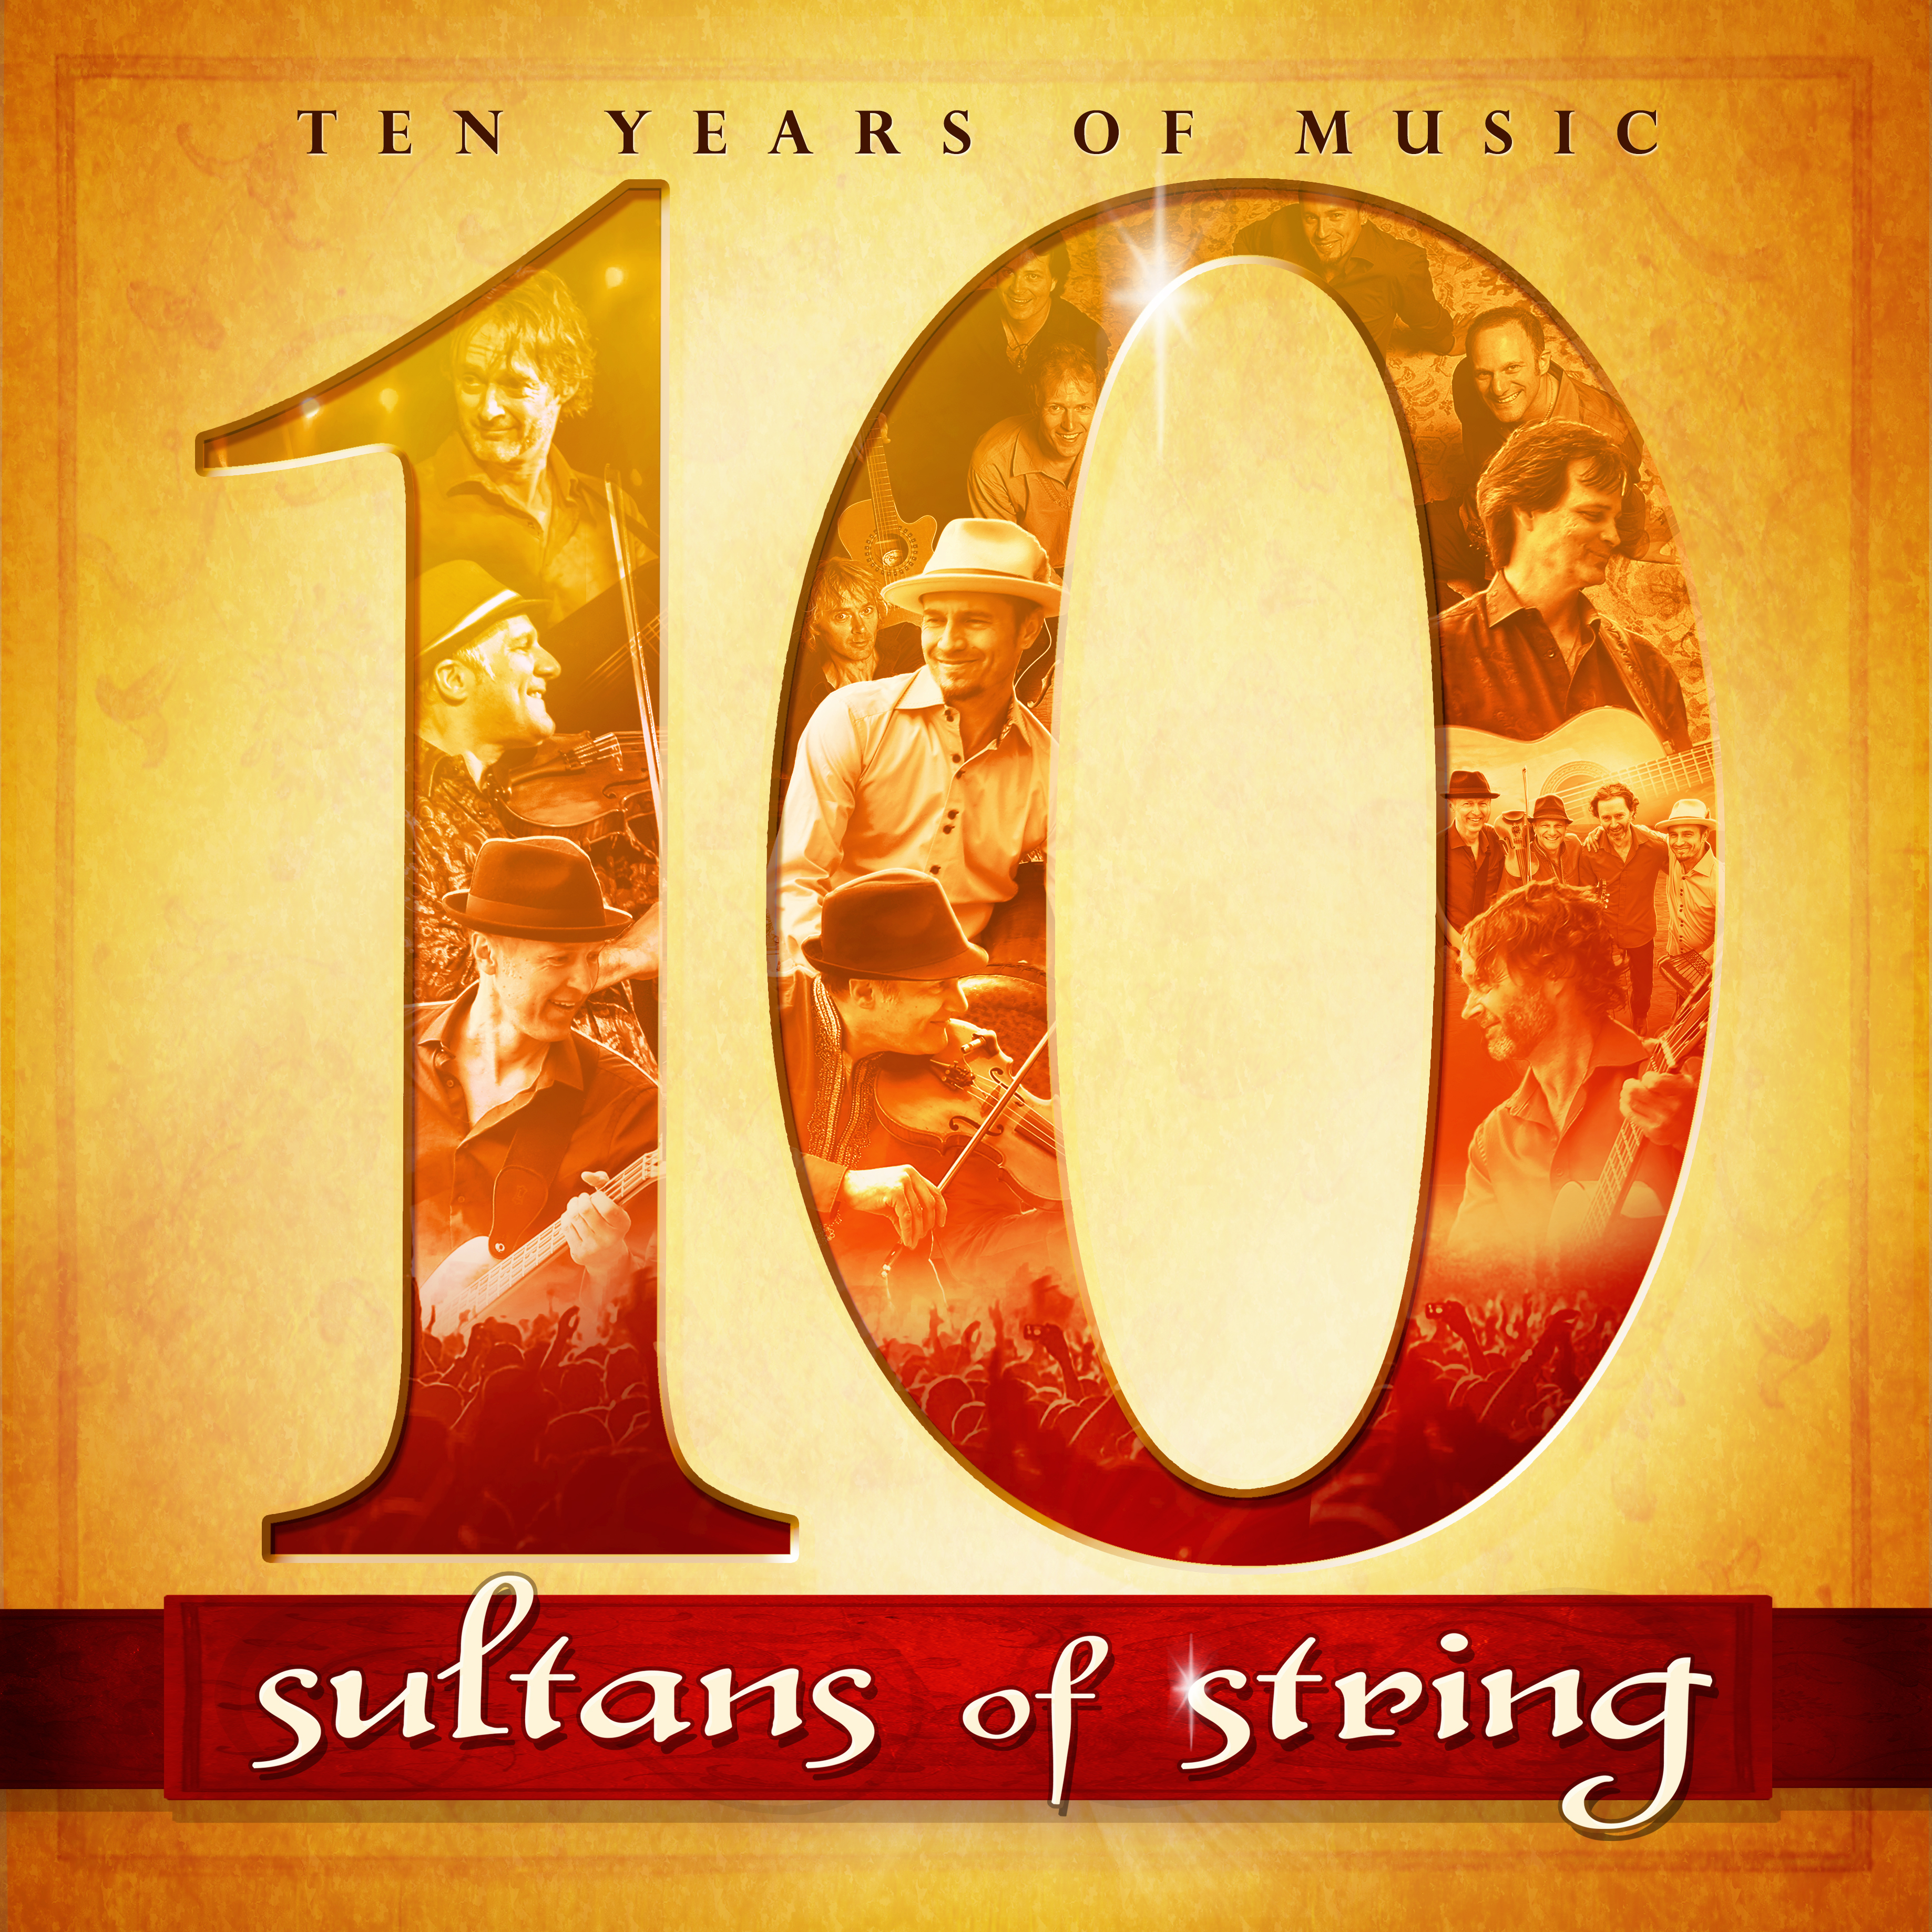 Ten Years of Music by Sultans of String